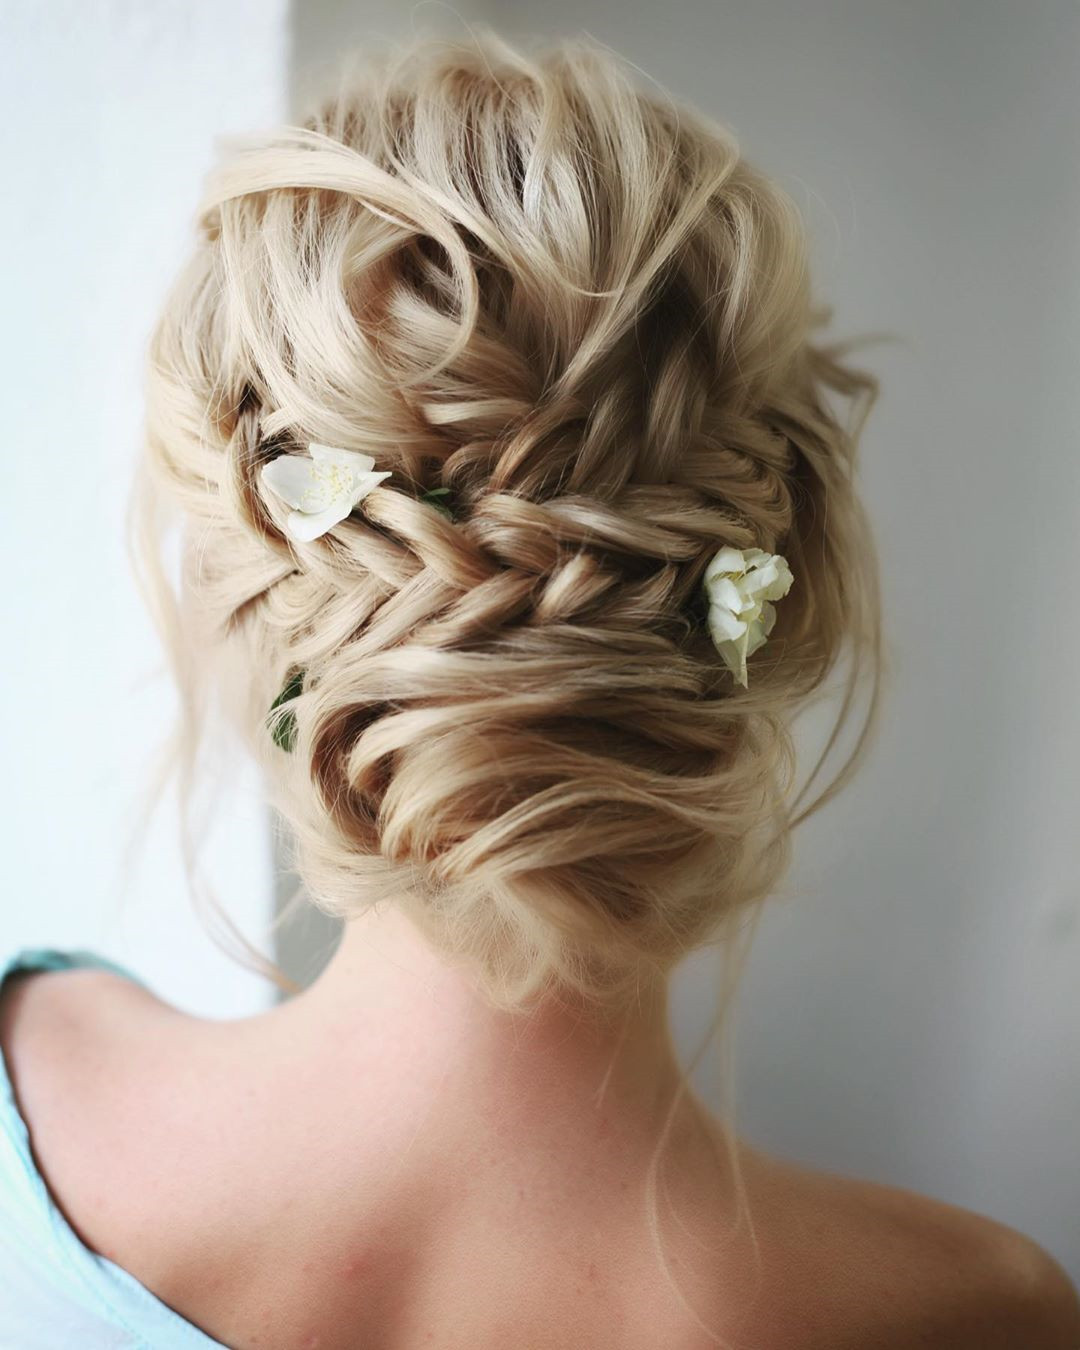 46 Gorgeous Updos Wedding Hairstyles ideas